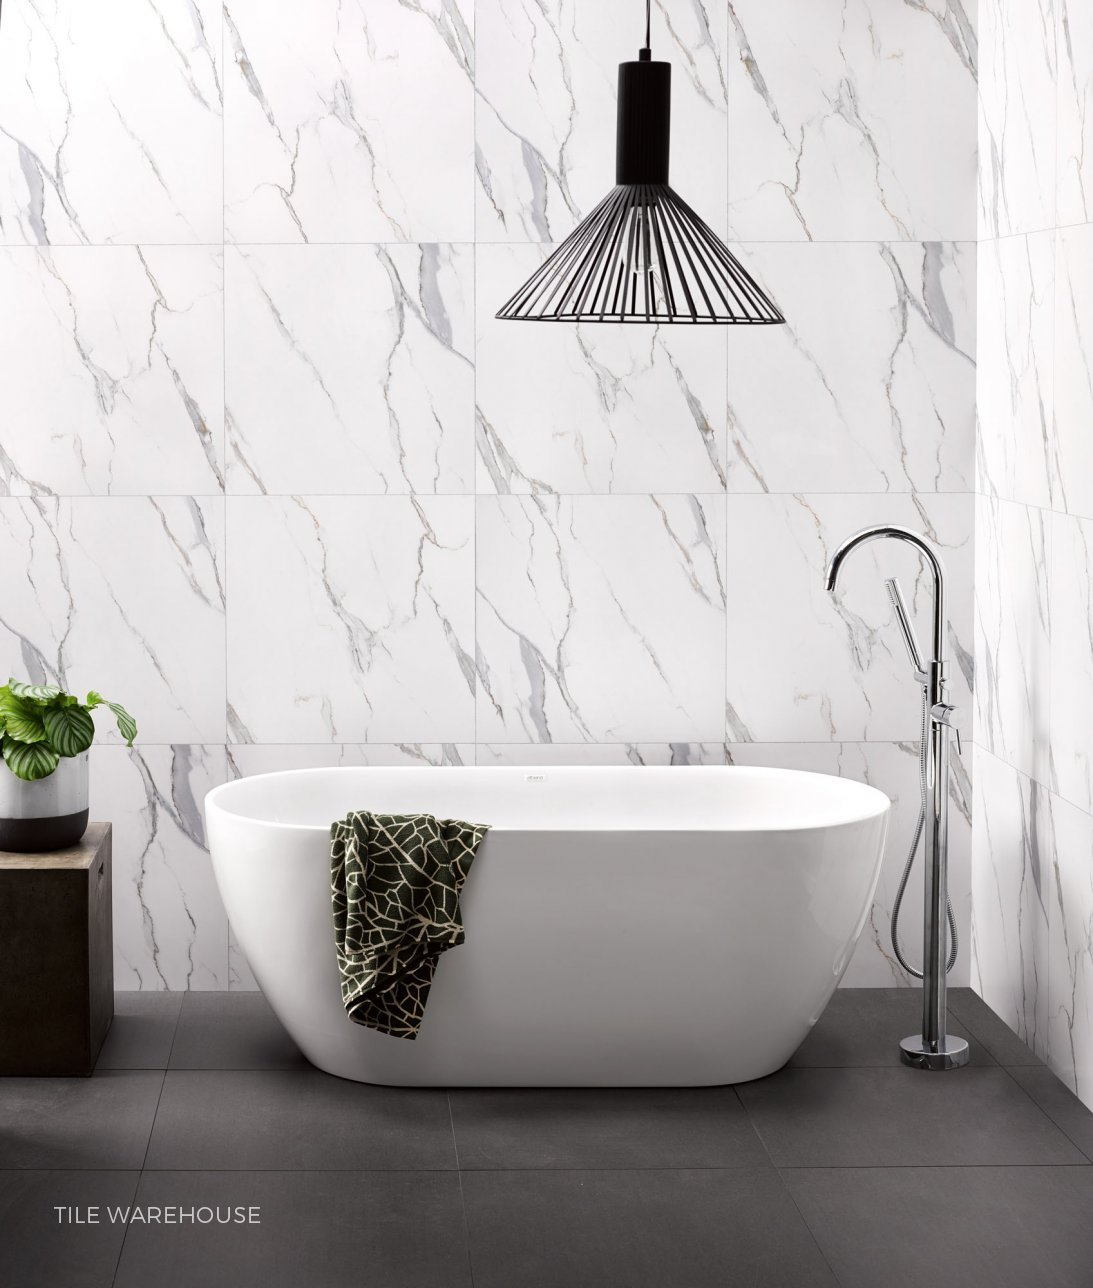 Bathroom Inspiration with Athena by Tile Warehouse